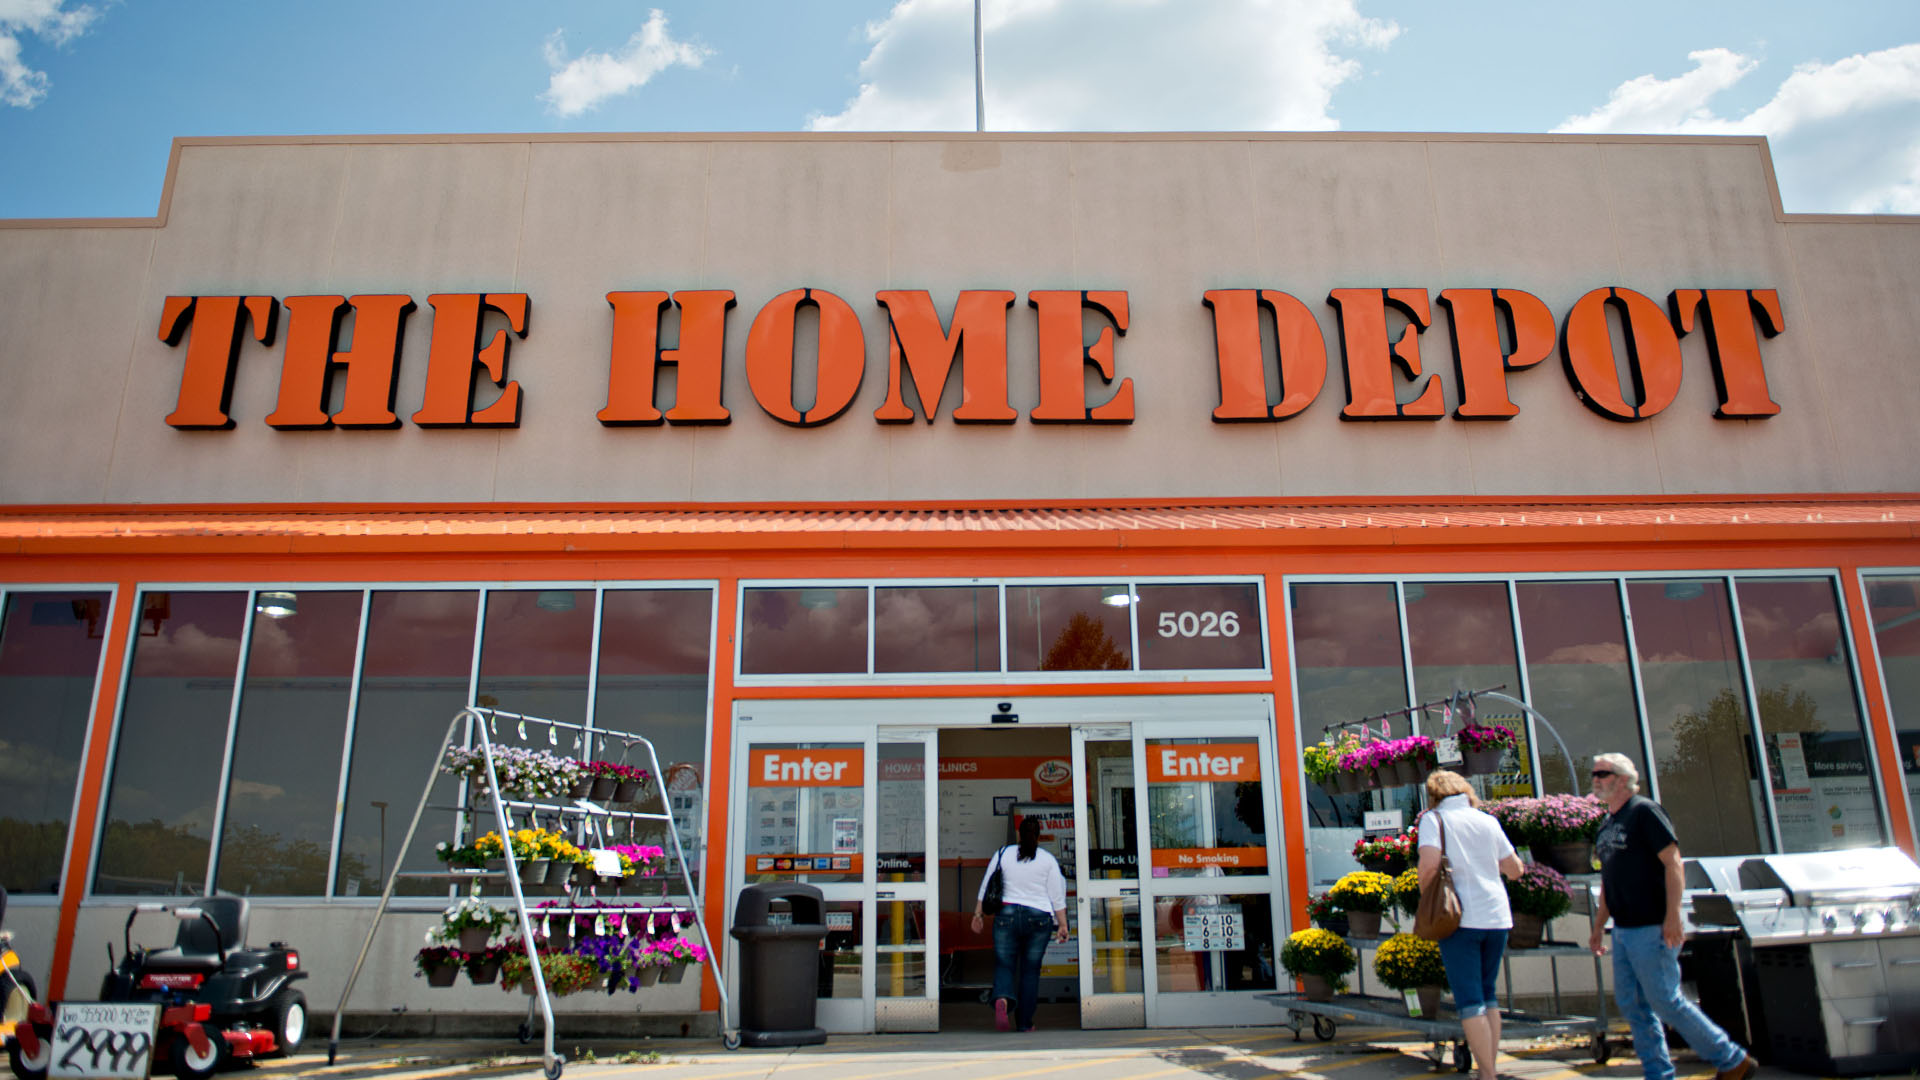 home depot has 93 increase in profit from latest quarter ticker report